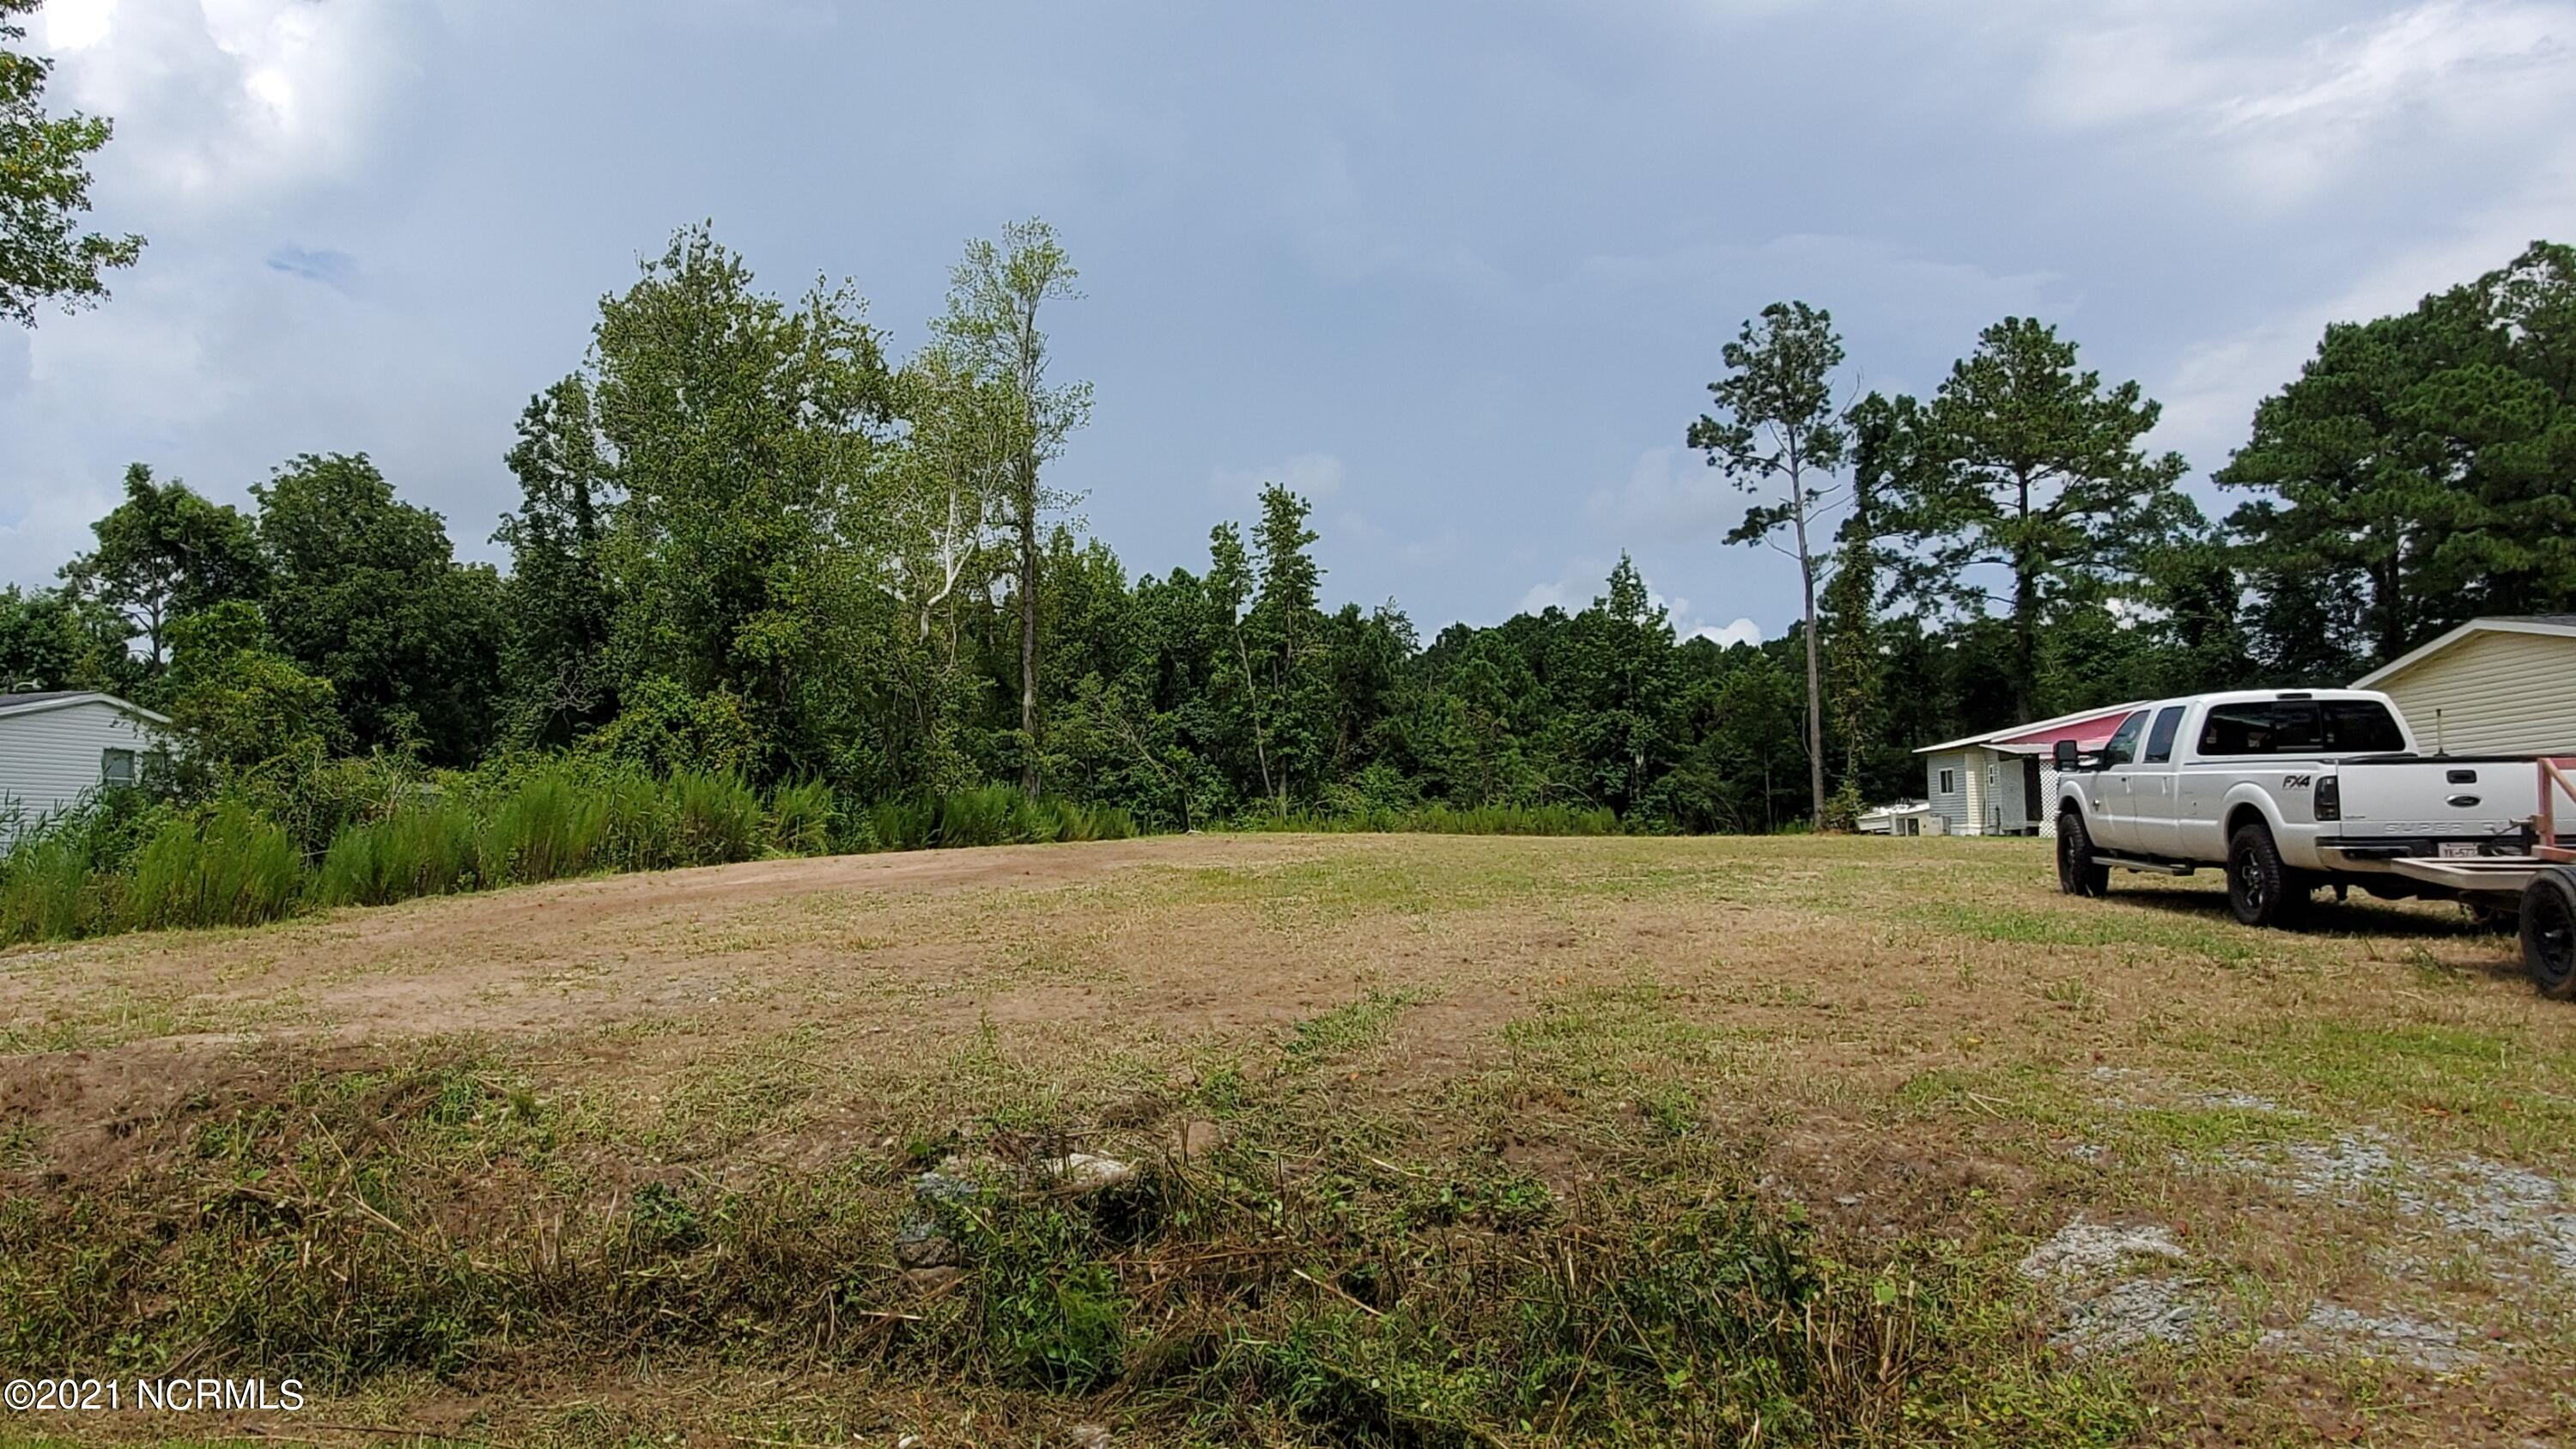 Nice cleared lot with 3 bedroom septic already installed. Community water is available. This lot is ready to go! Modular, mobile home, or stick built is allowed. There is deeded water access.Convenient to beaches and inlet.